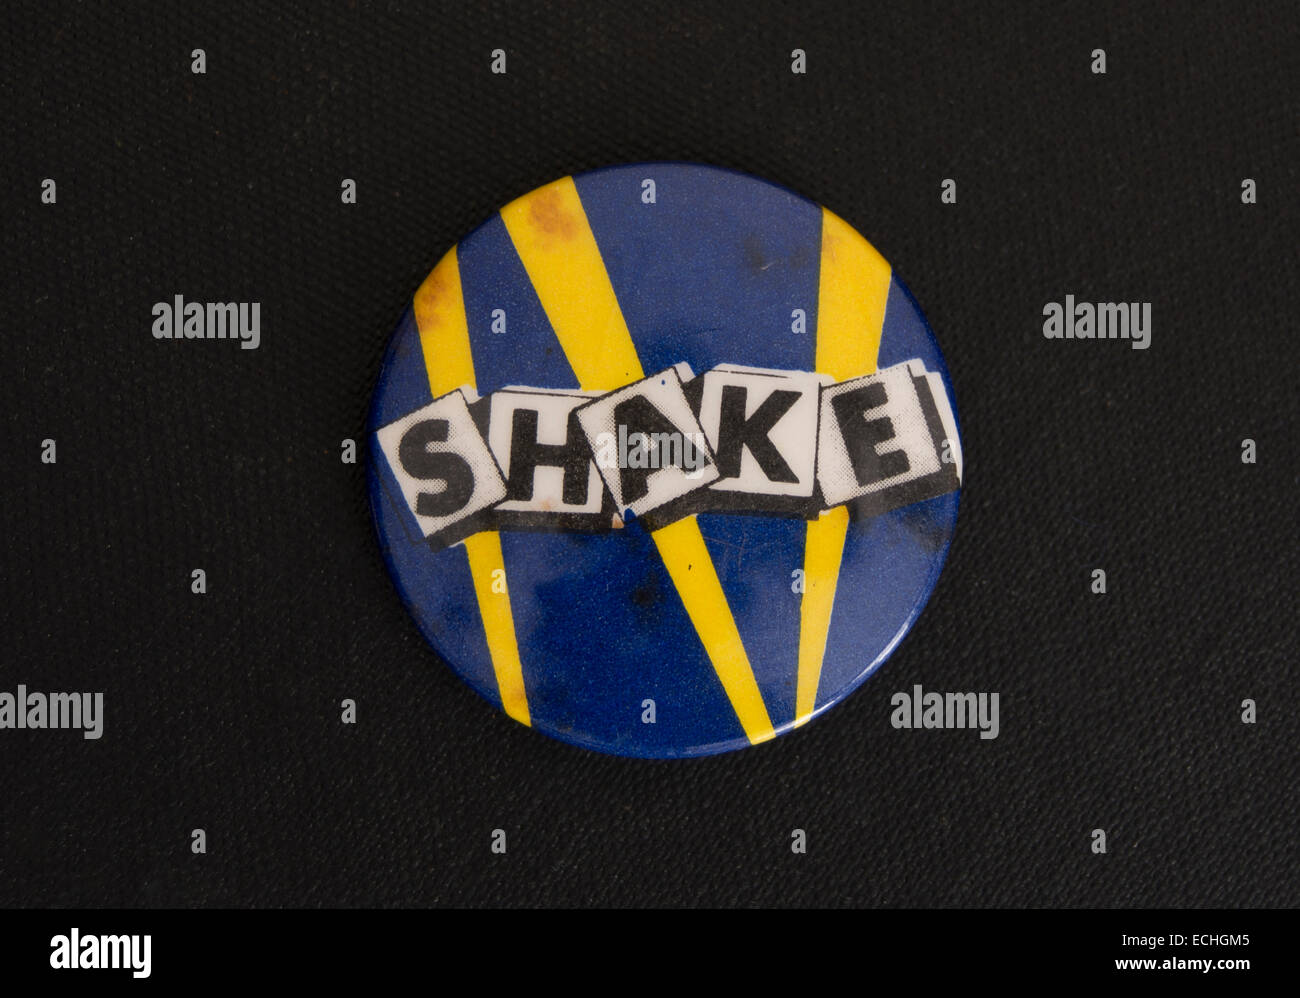 lapel badge promoting short lived late 1970s band, shake - Stock Image